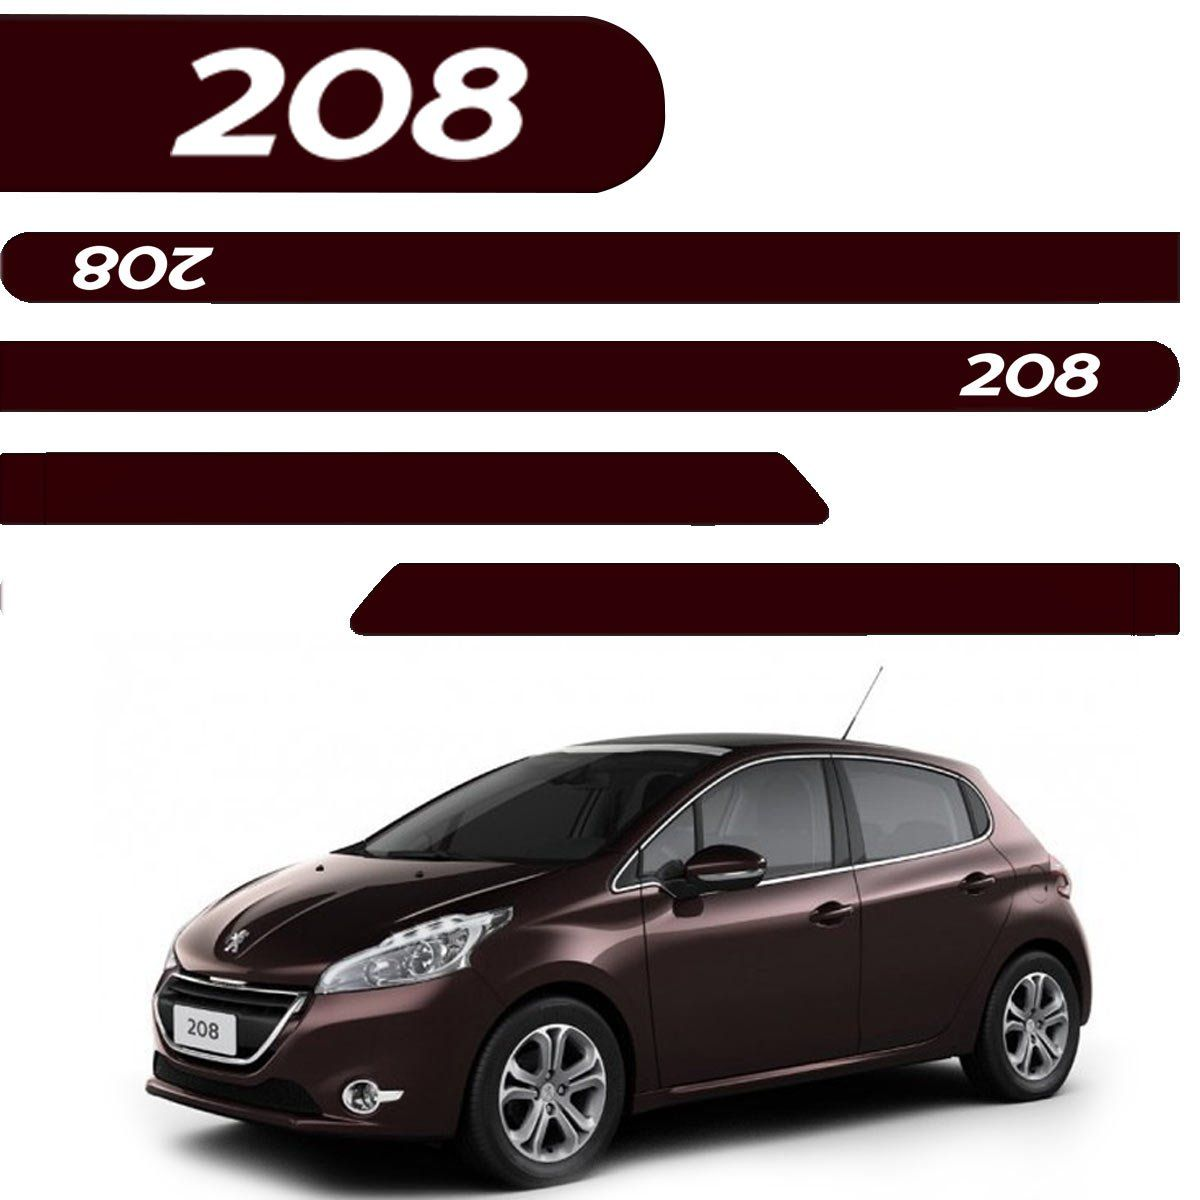 Friso Lateral Peugeot 208 Personalizado